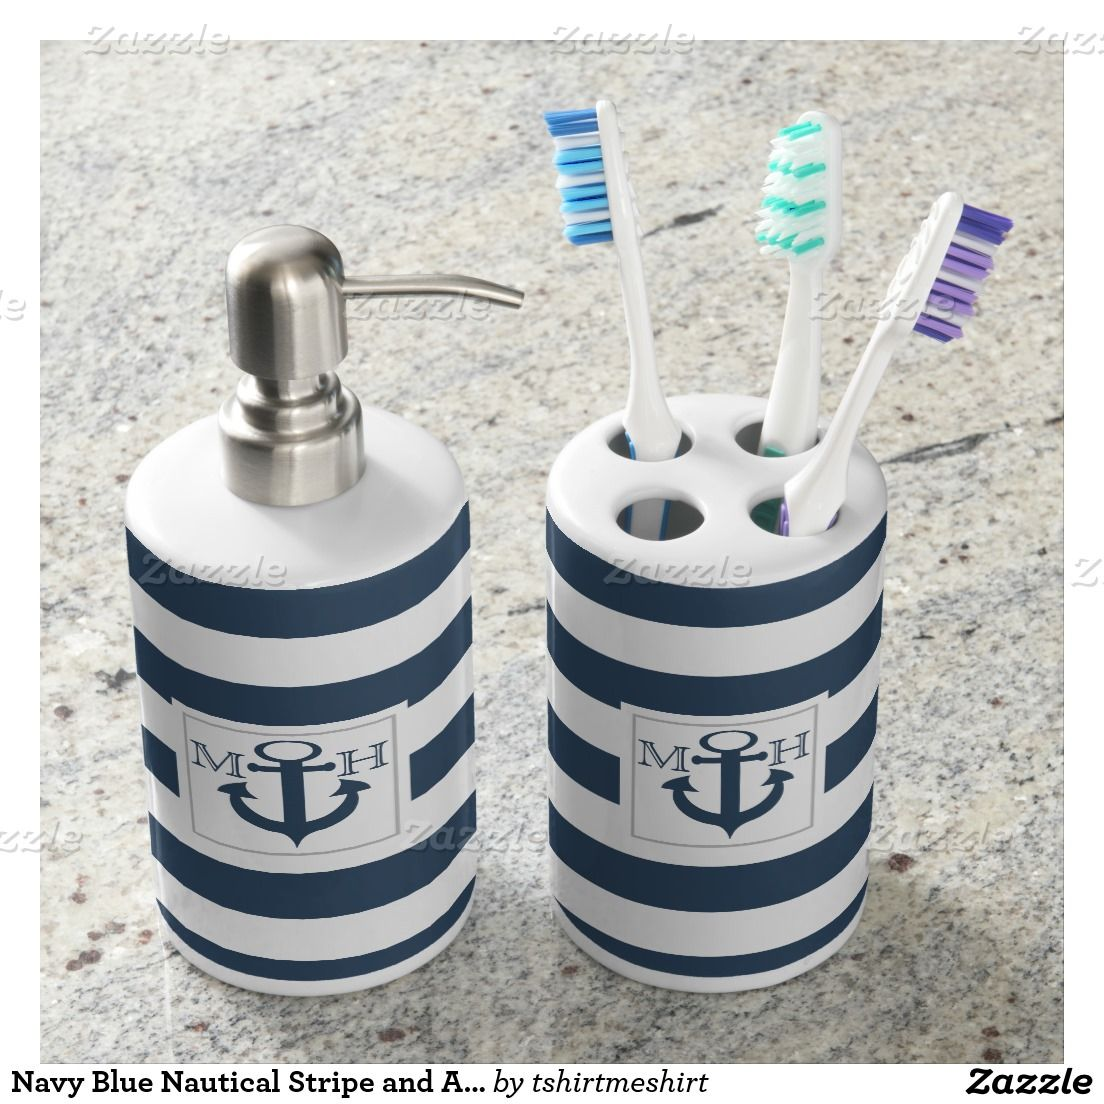 Navy Blue Nautical Stripe and Anchor with Monogram Bath Accessory ...